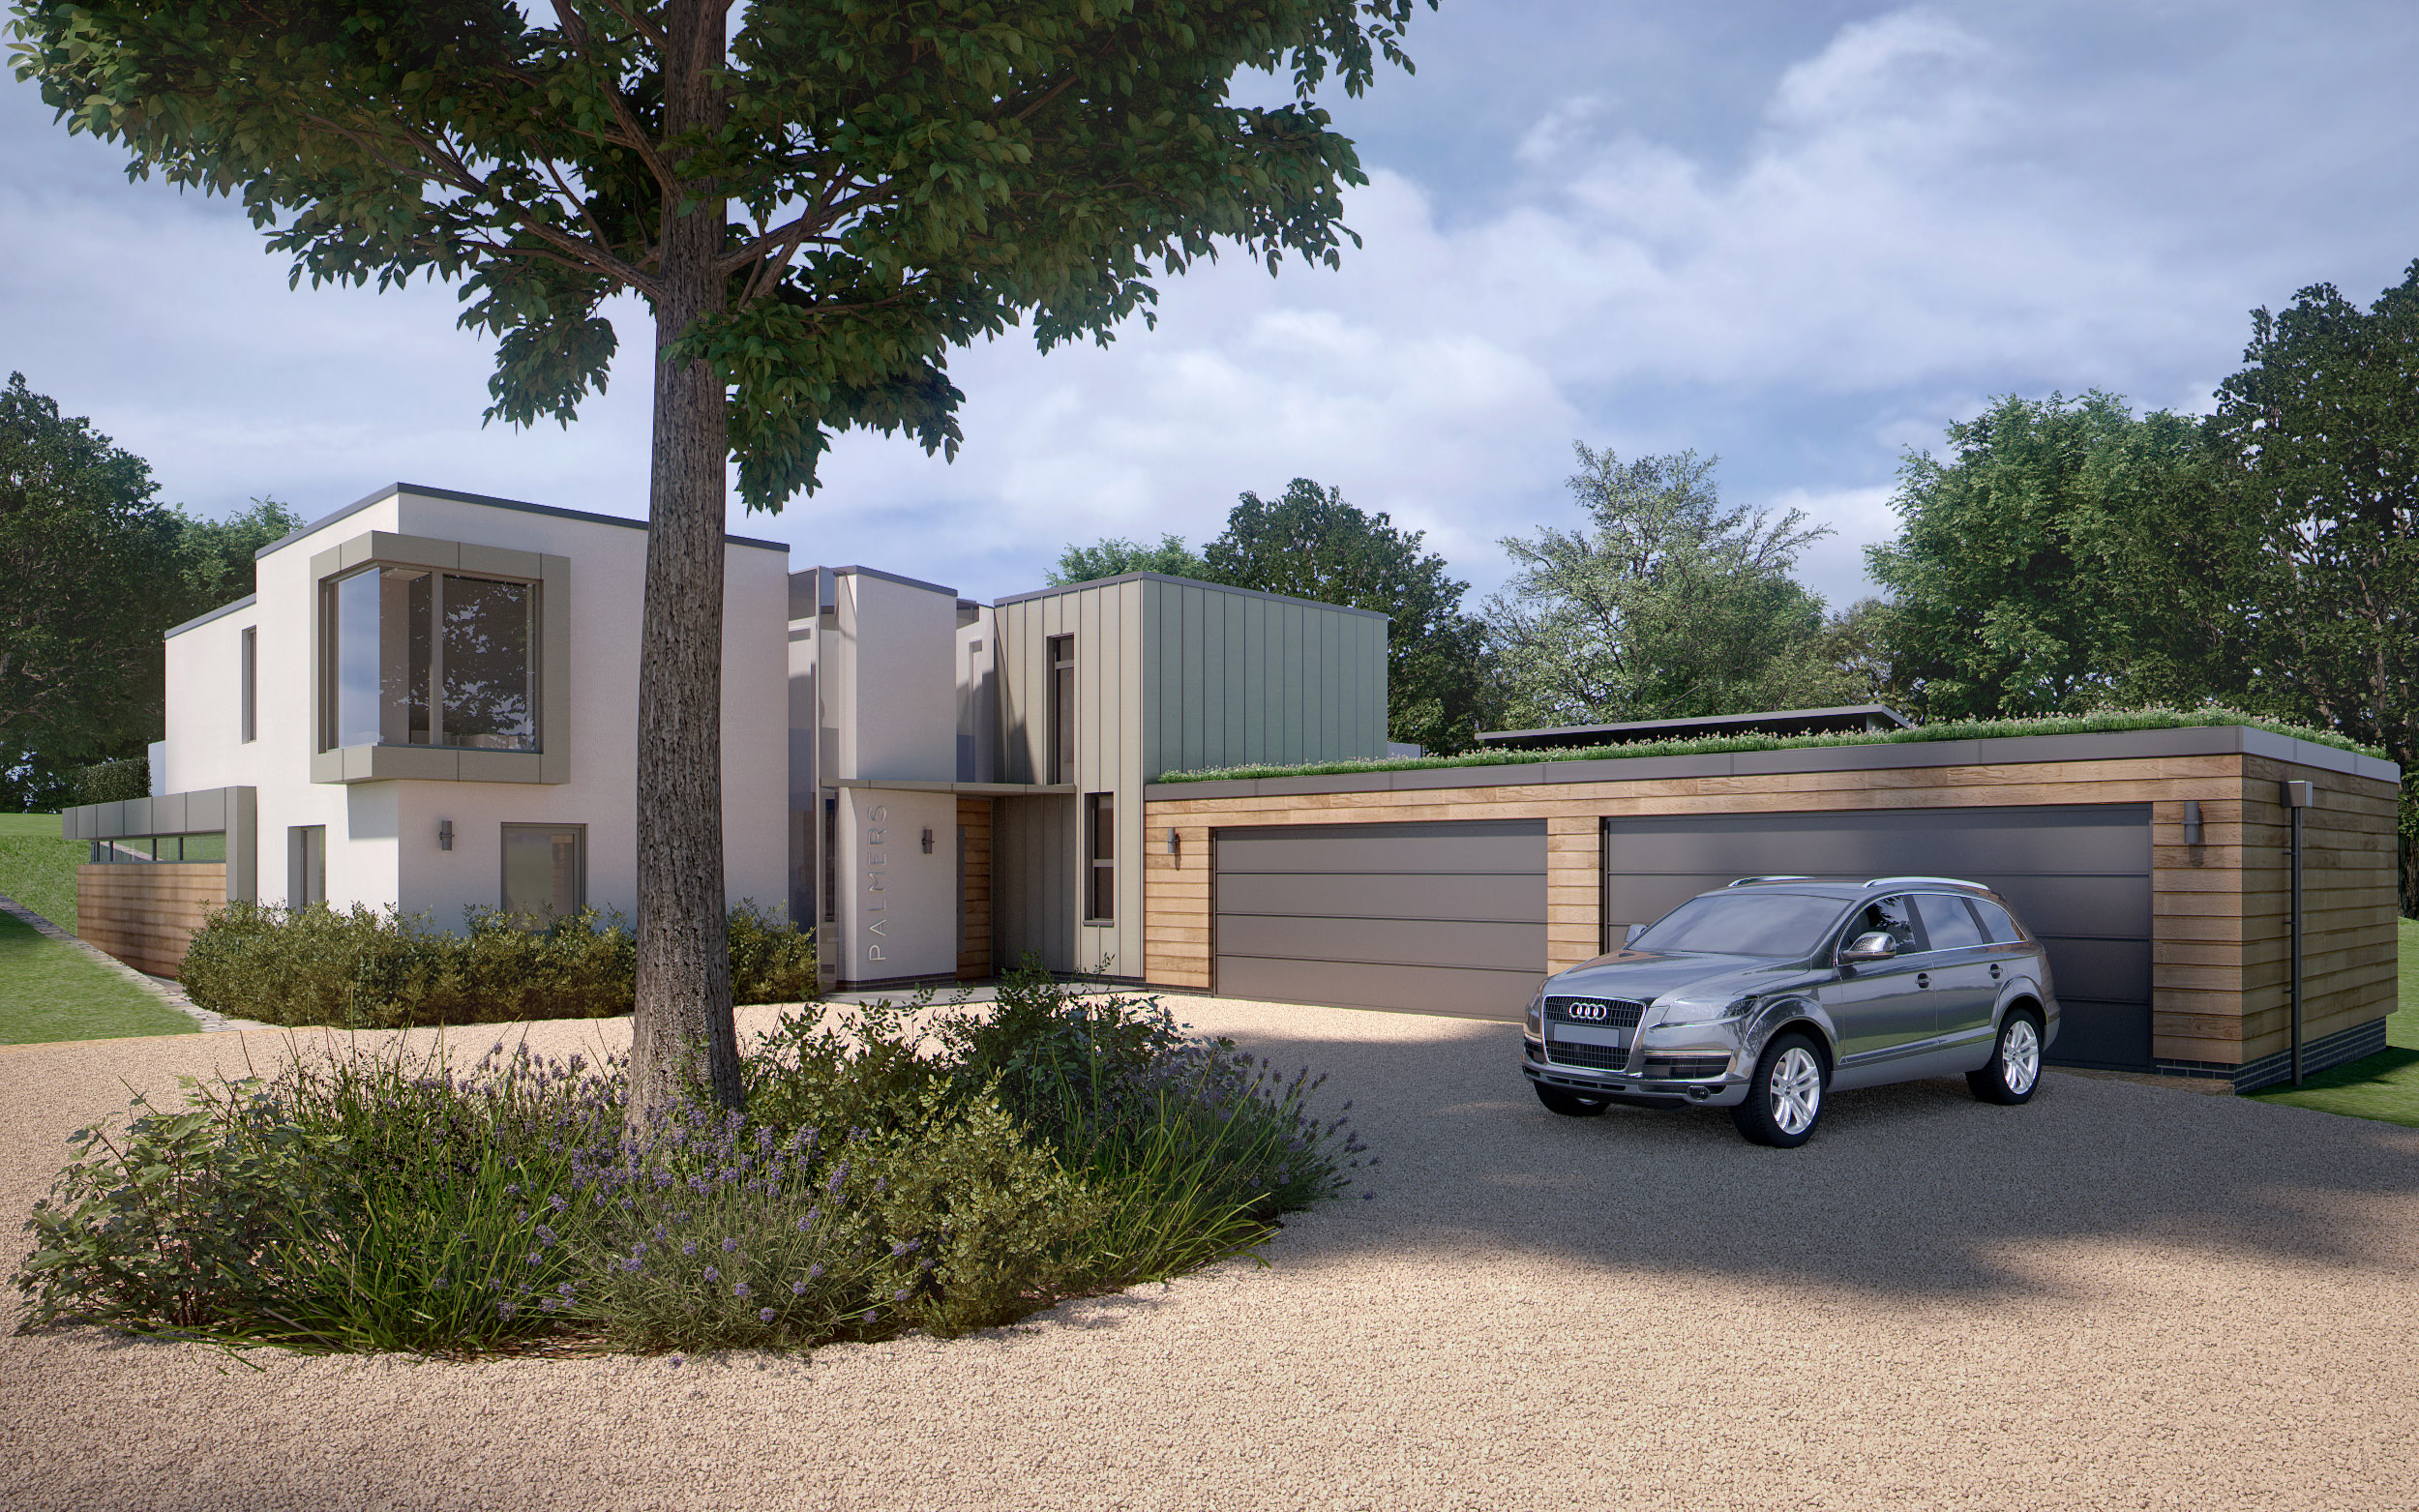 New house blewberry architecture and architects in for Home architecture newbury